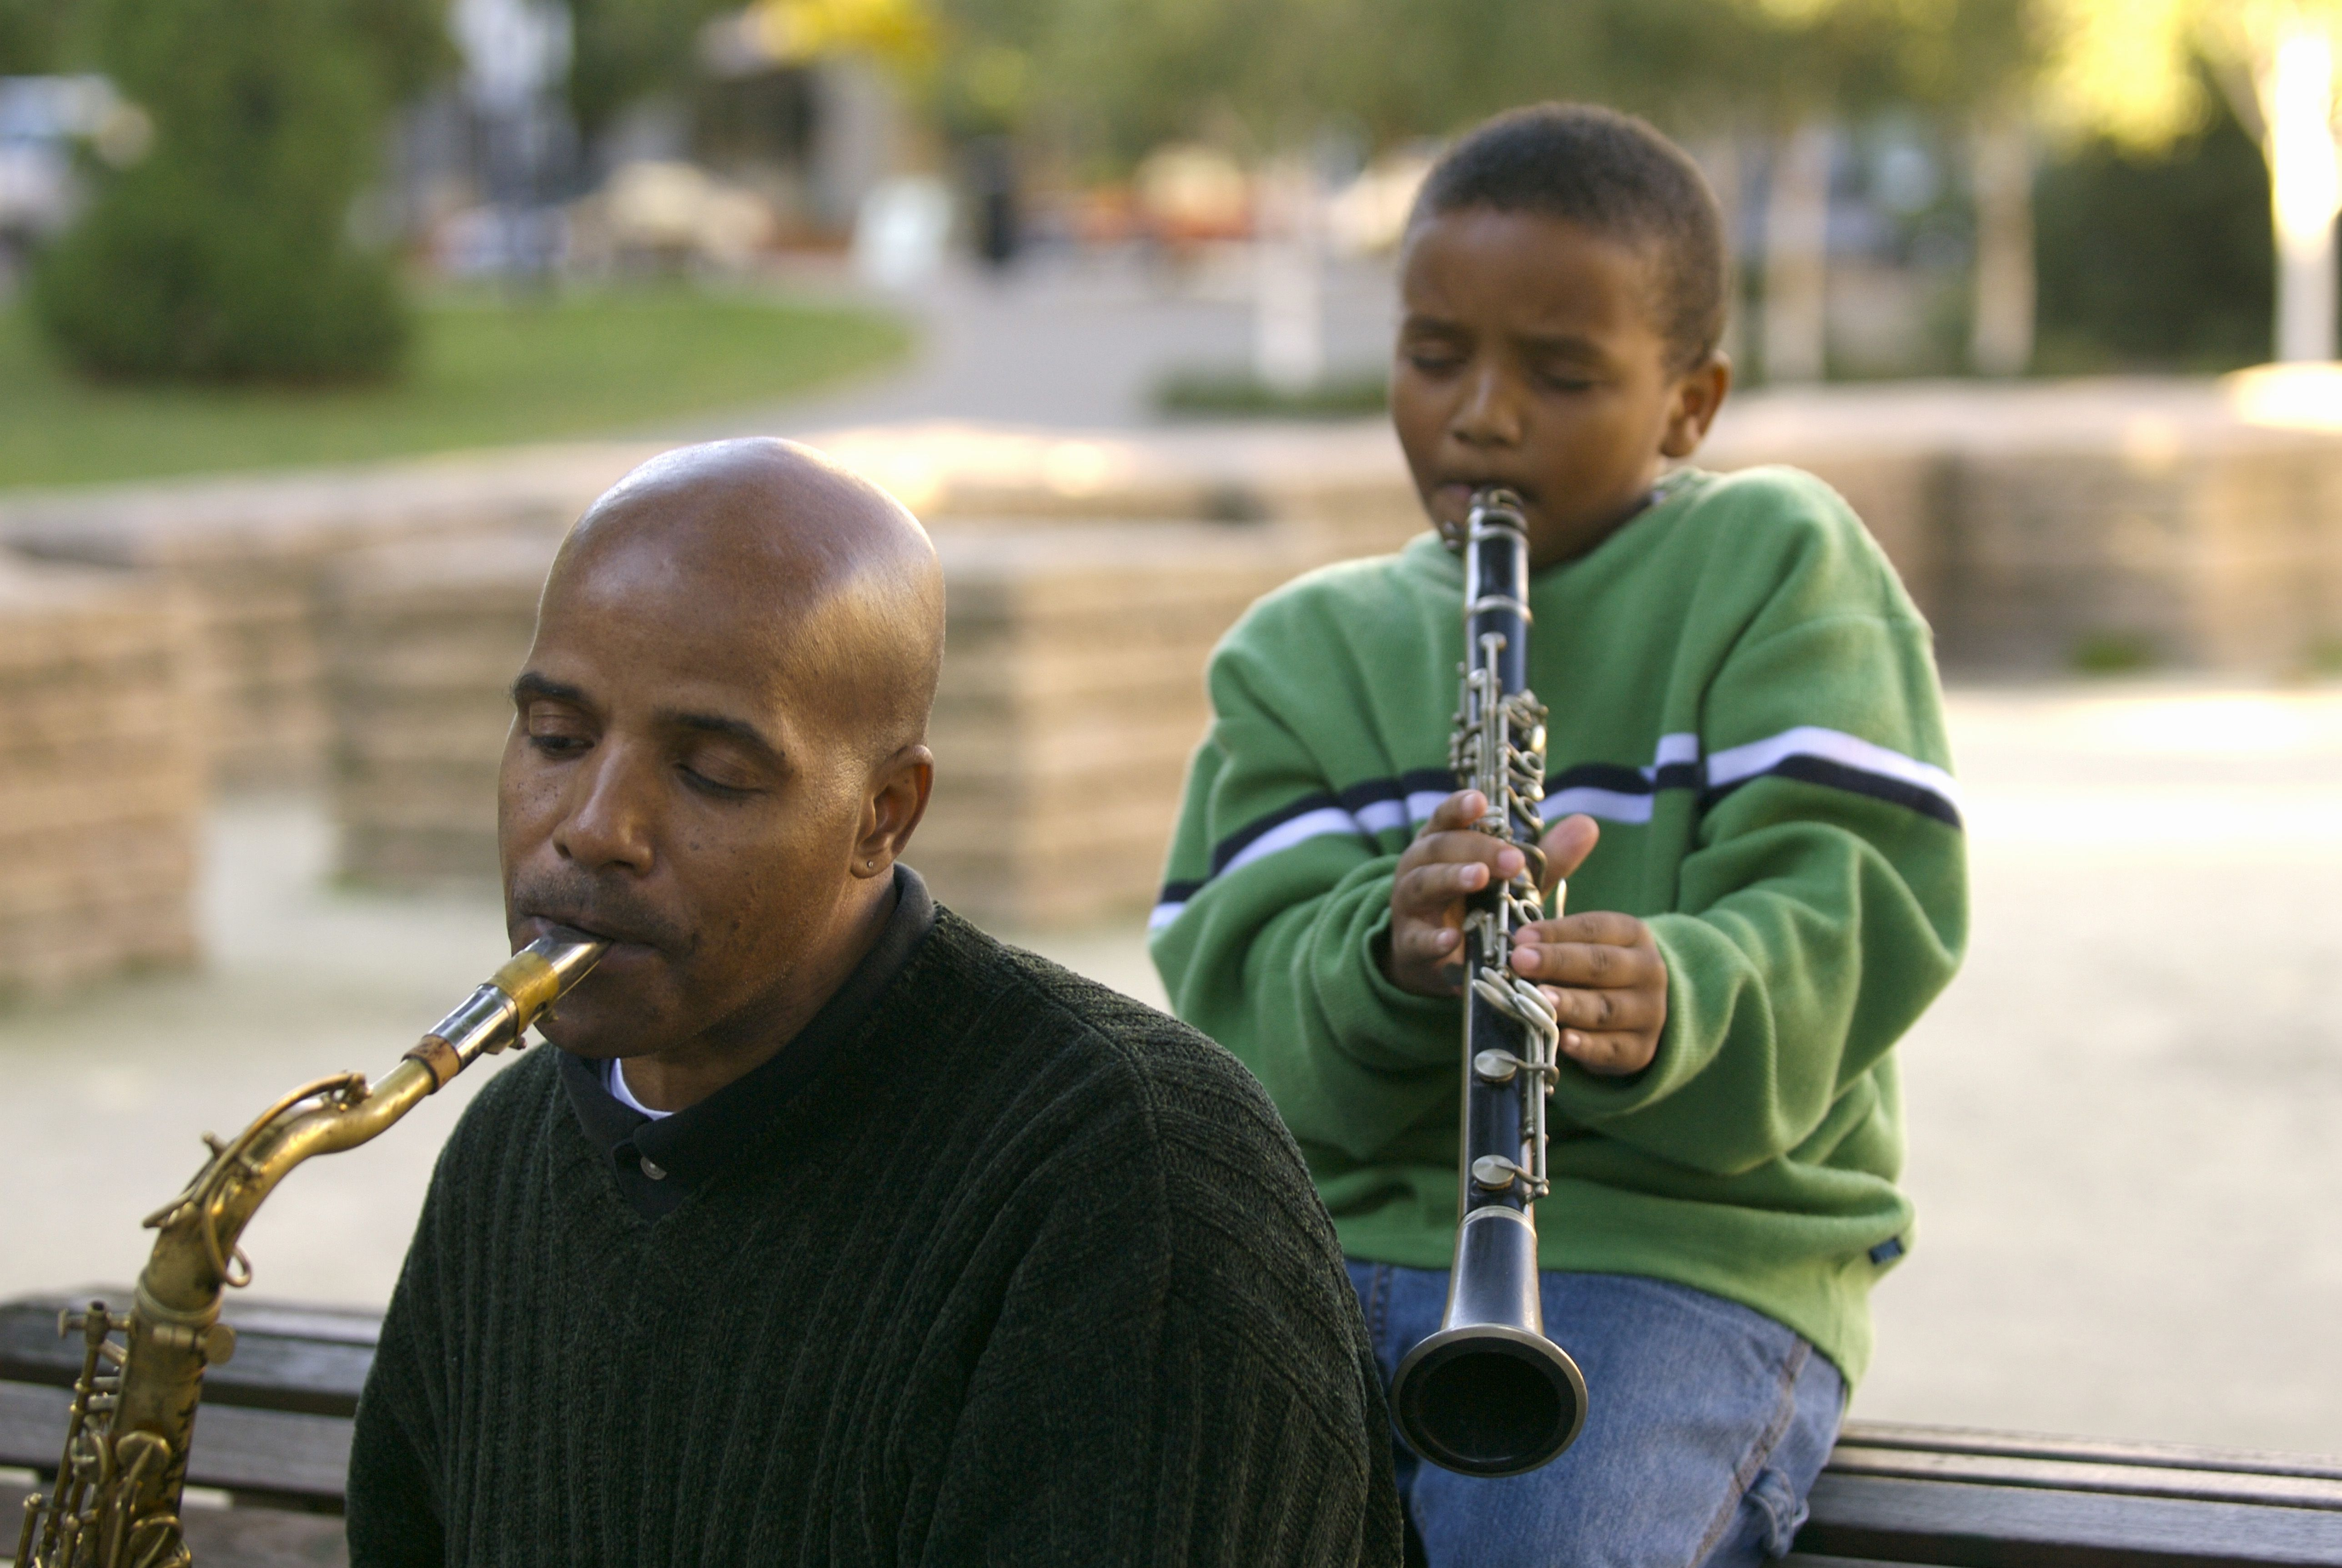 Father and son playing instruments